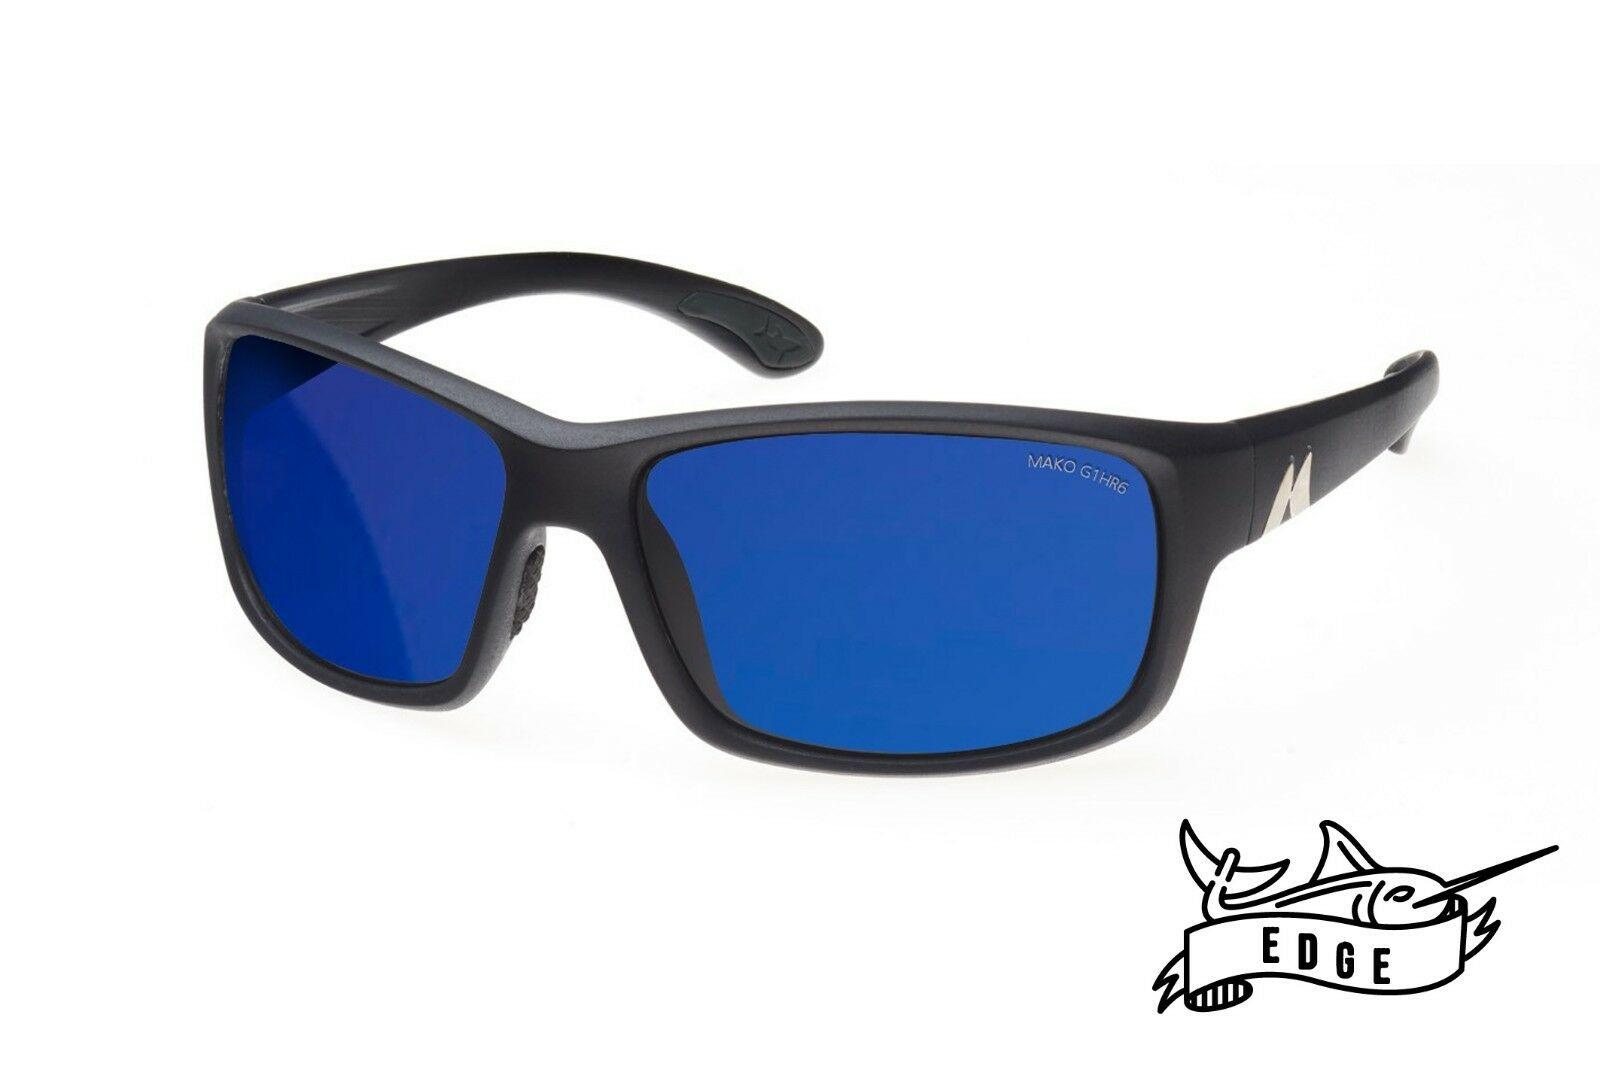 Mako EDGE- bluee Glass Mirror Sunglasses Polarised MO1 9604 G1HR6 + Shirt